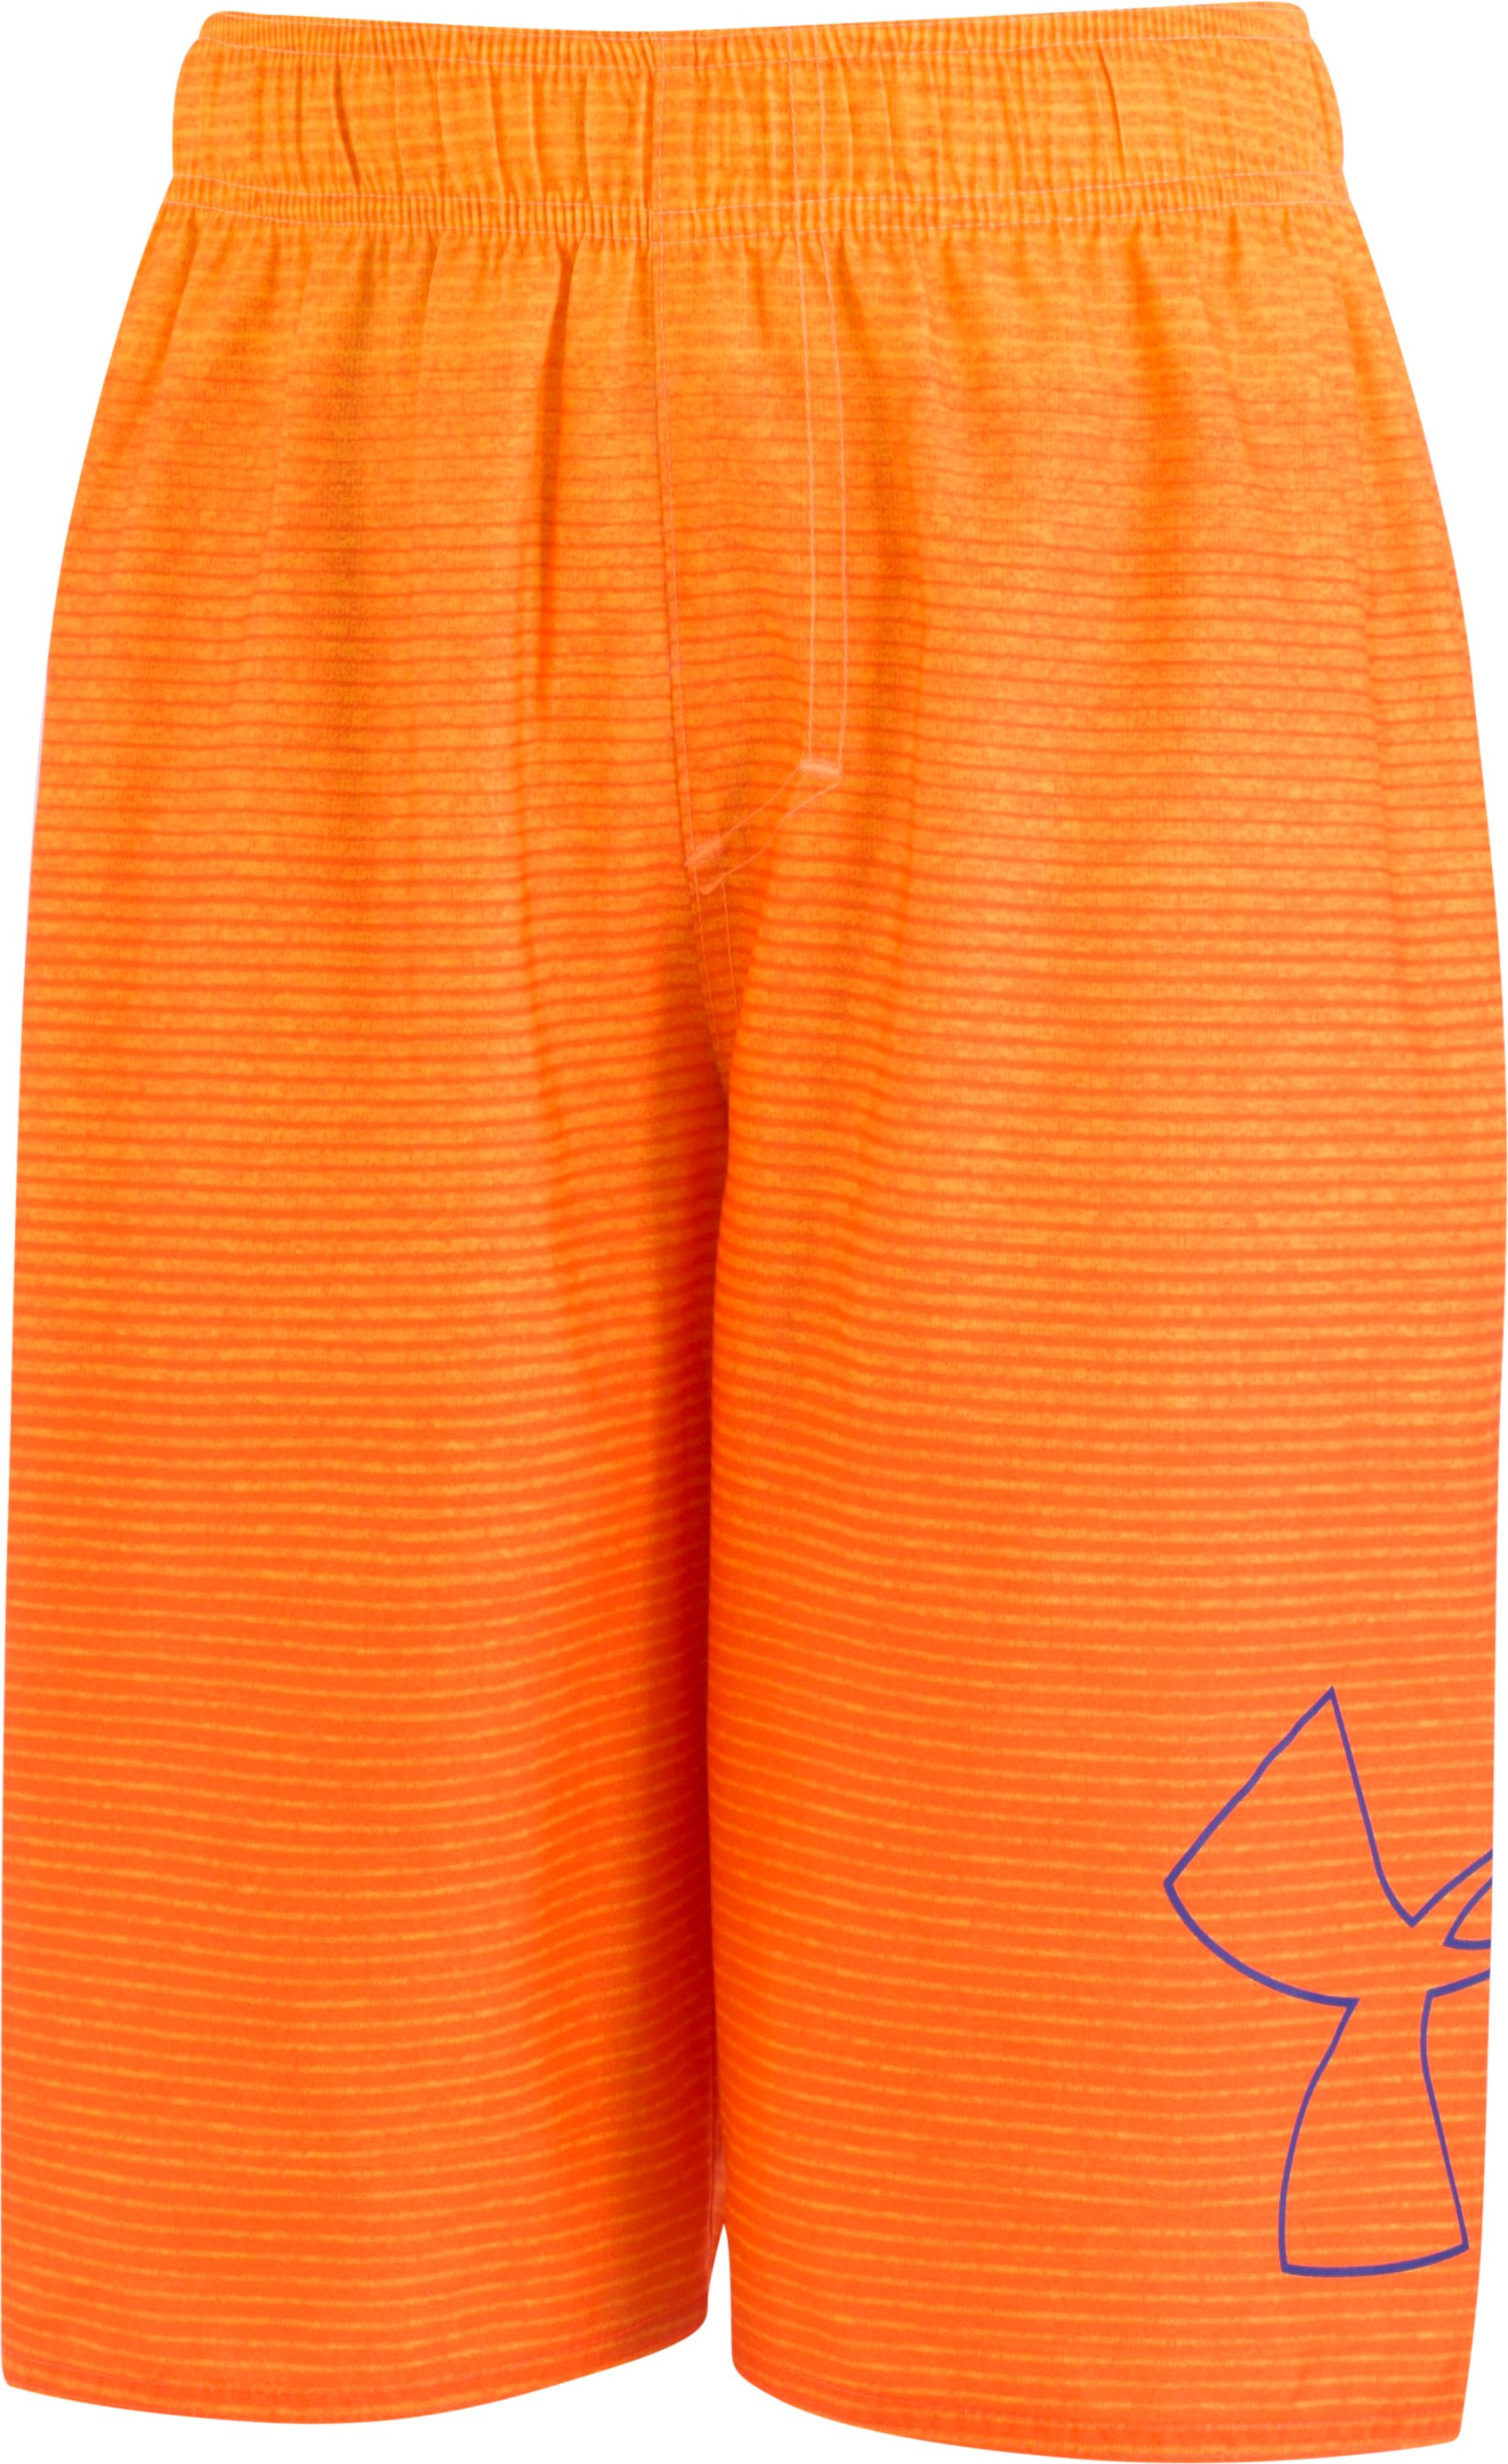 Boys' Toddler UA Fader Icon Volley , MAGMA ORANGE, zoomed